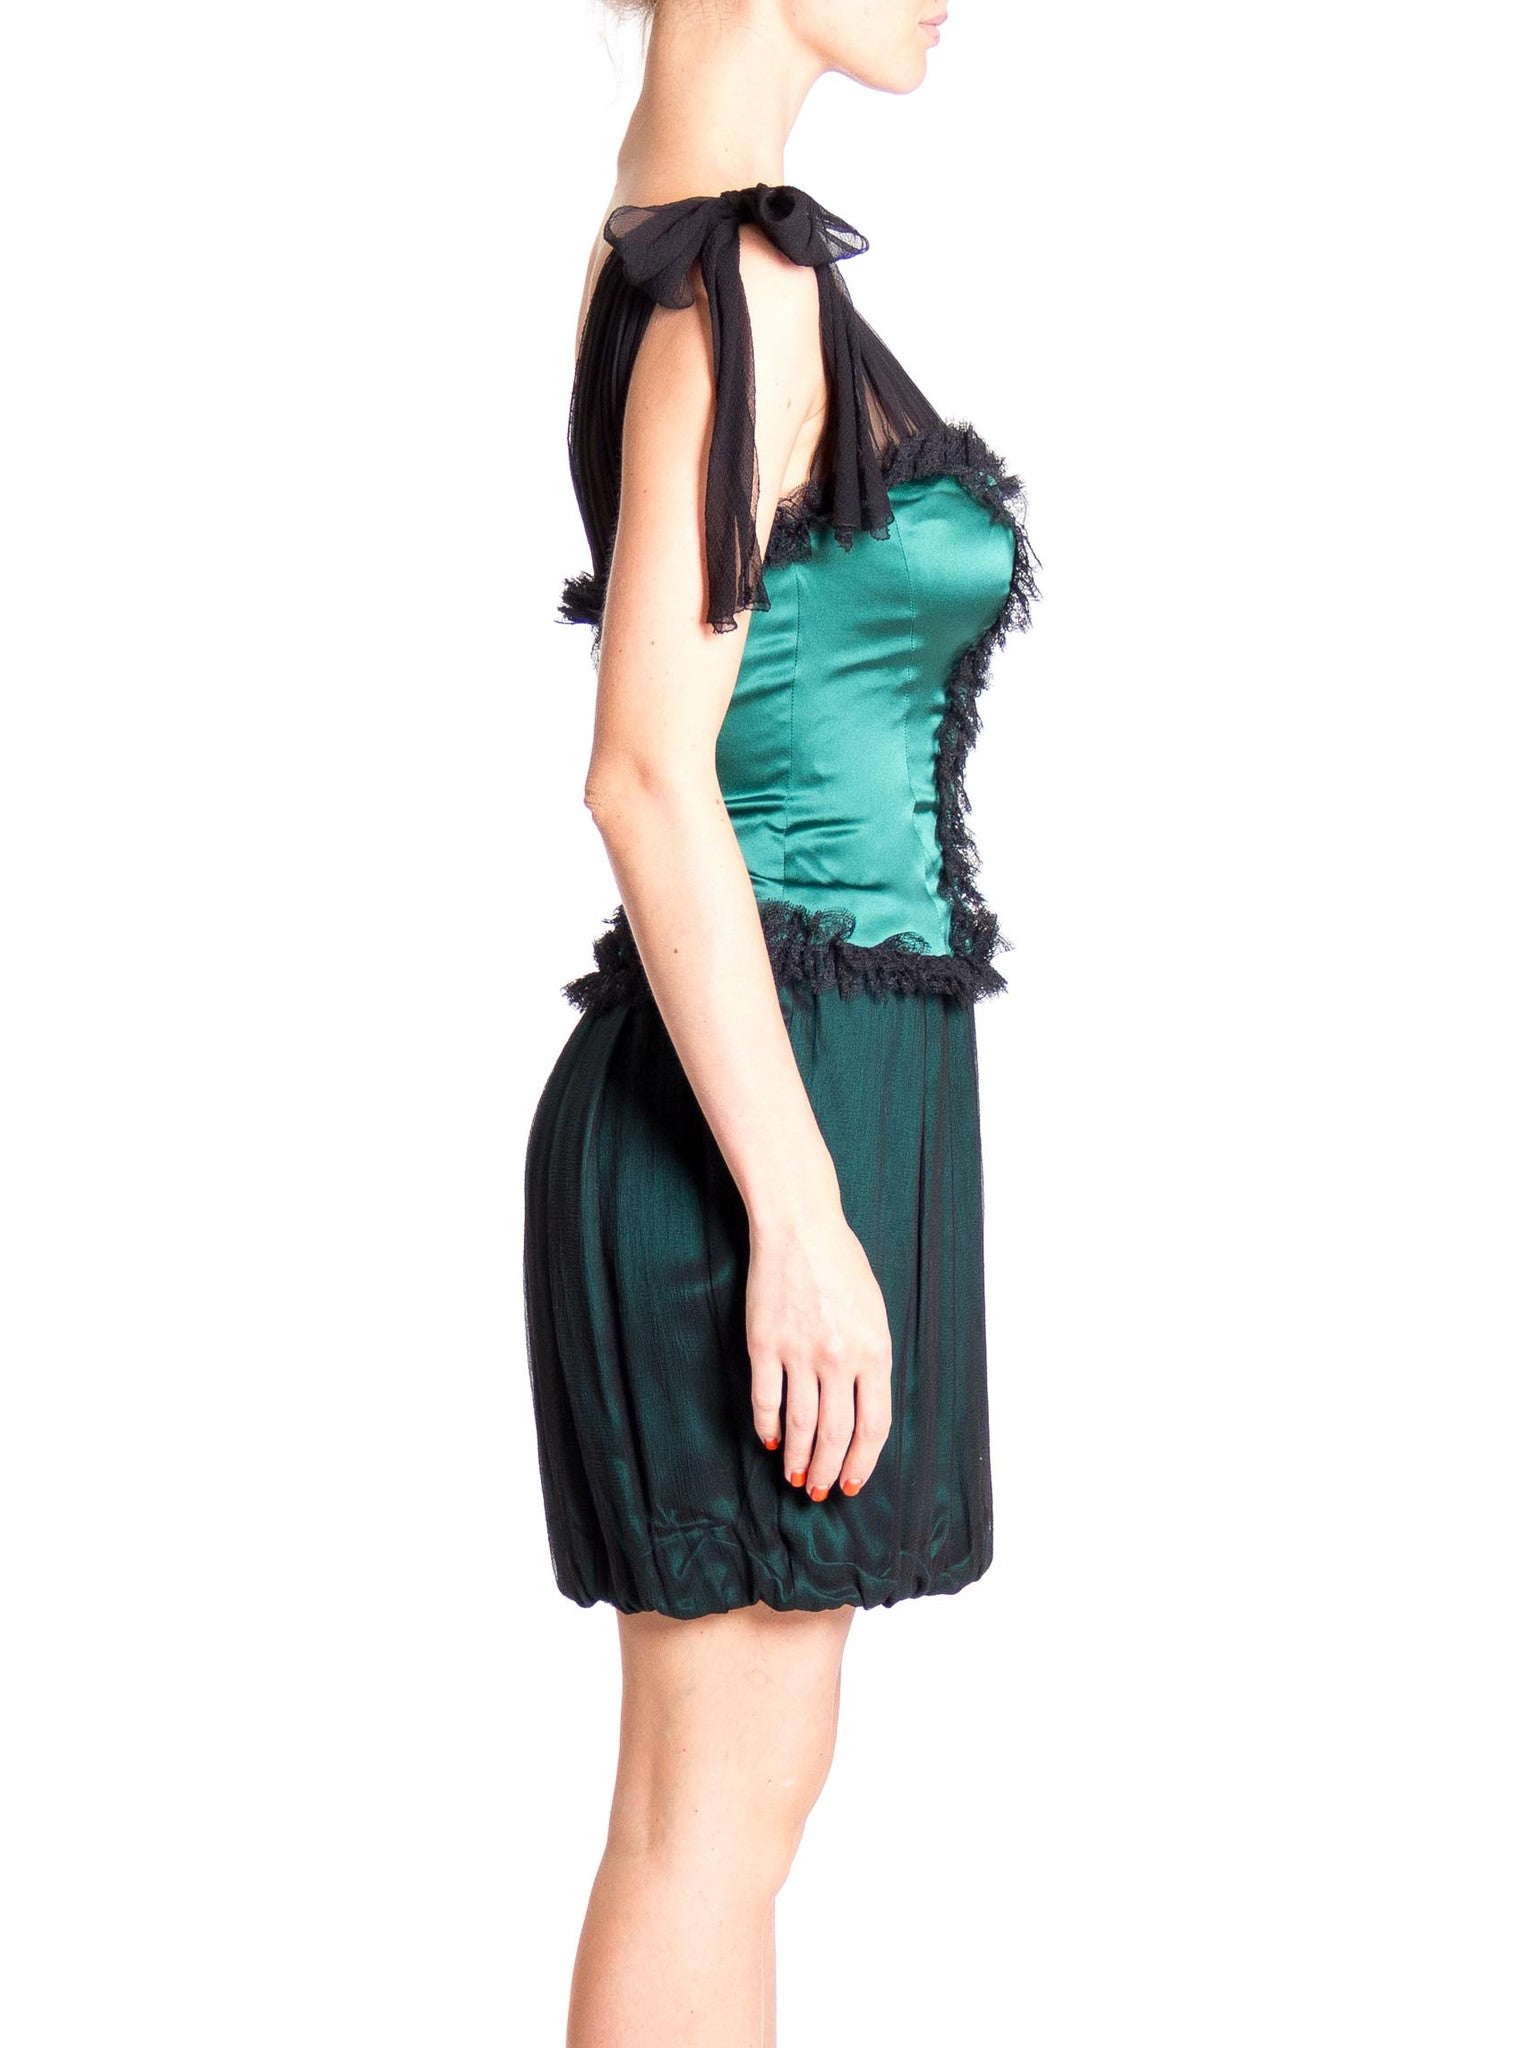 2000S Emerald Green & Black Silk Charmeuse Chiffon Victorian Inspired Bubble Skirt Cocktail Dress